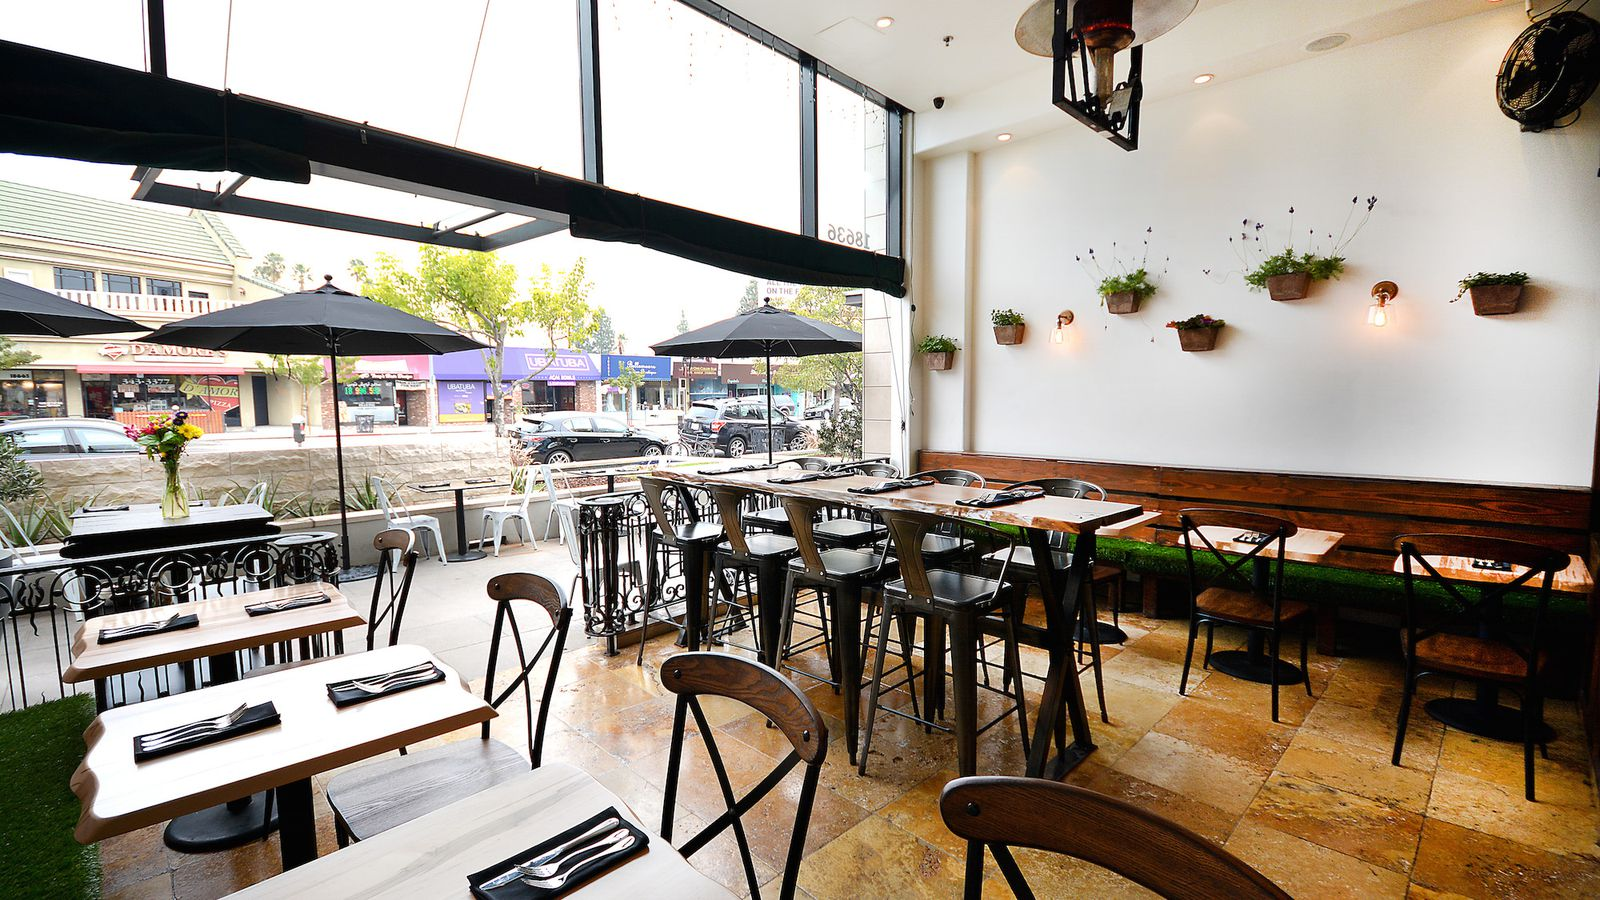 118 degrees is the raw vegan gluten free restaurant tarzana apparently needed eater la